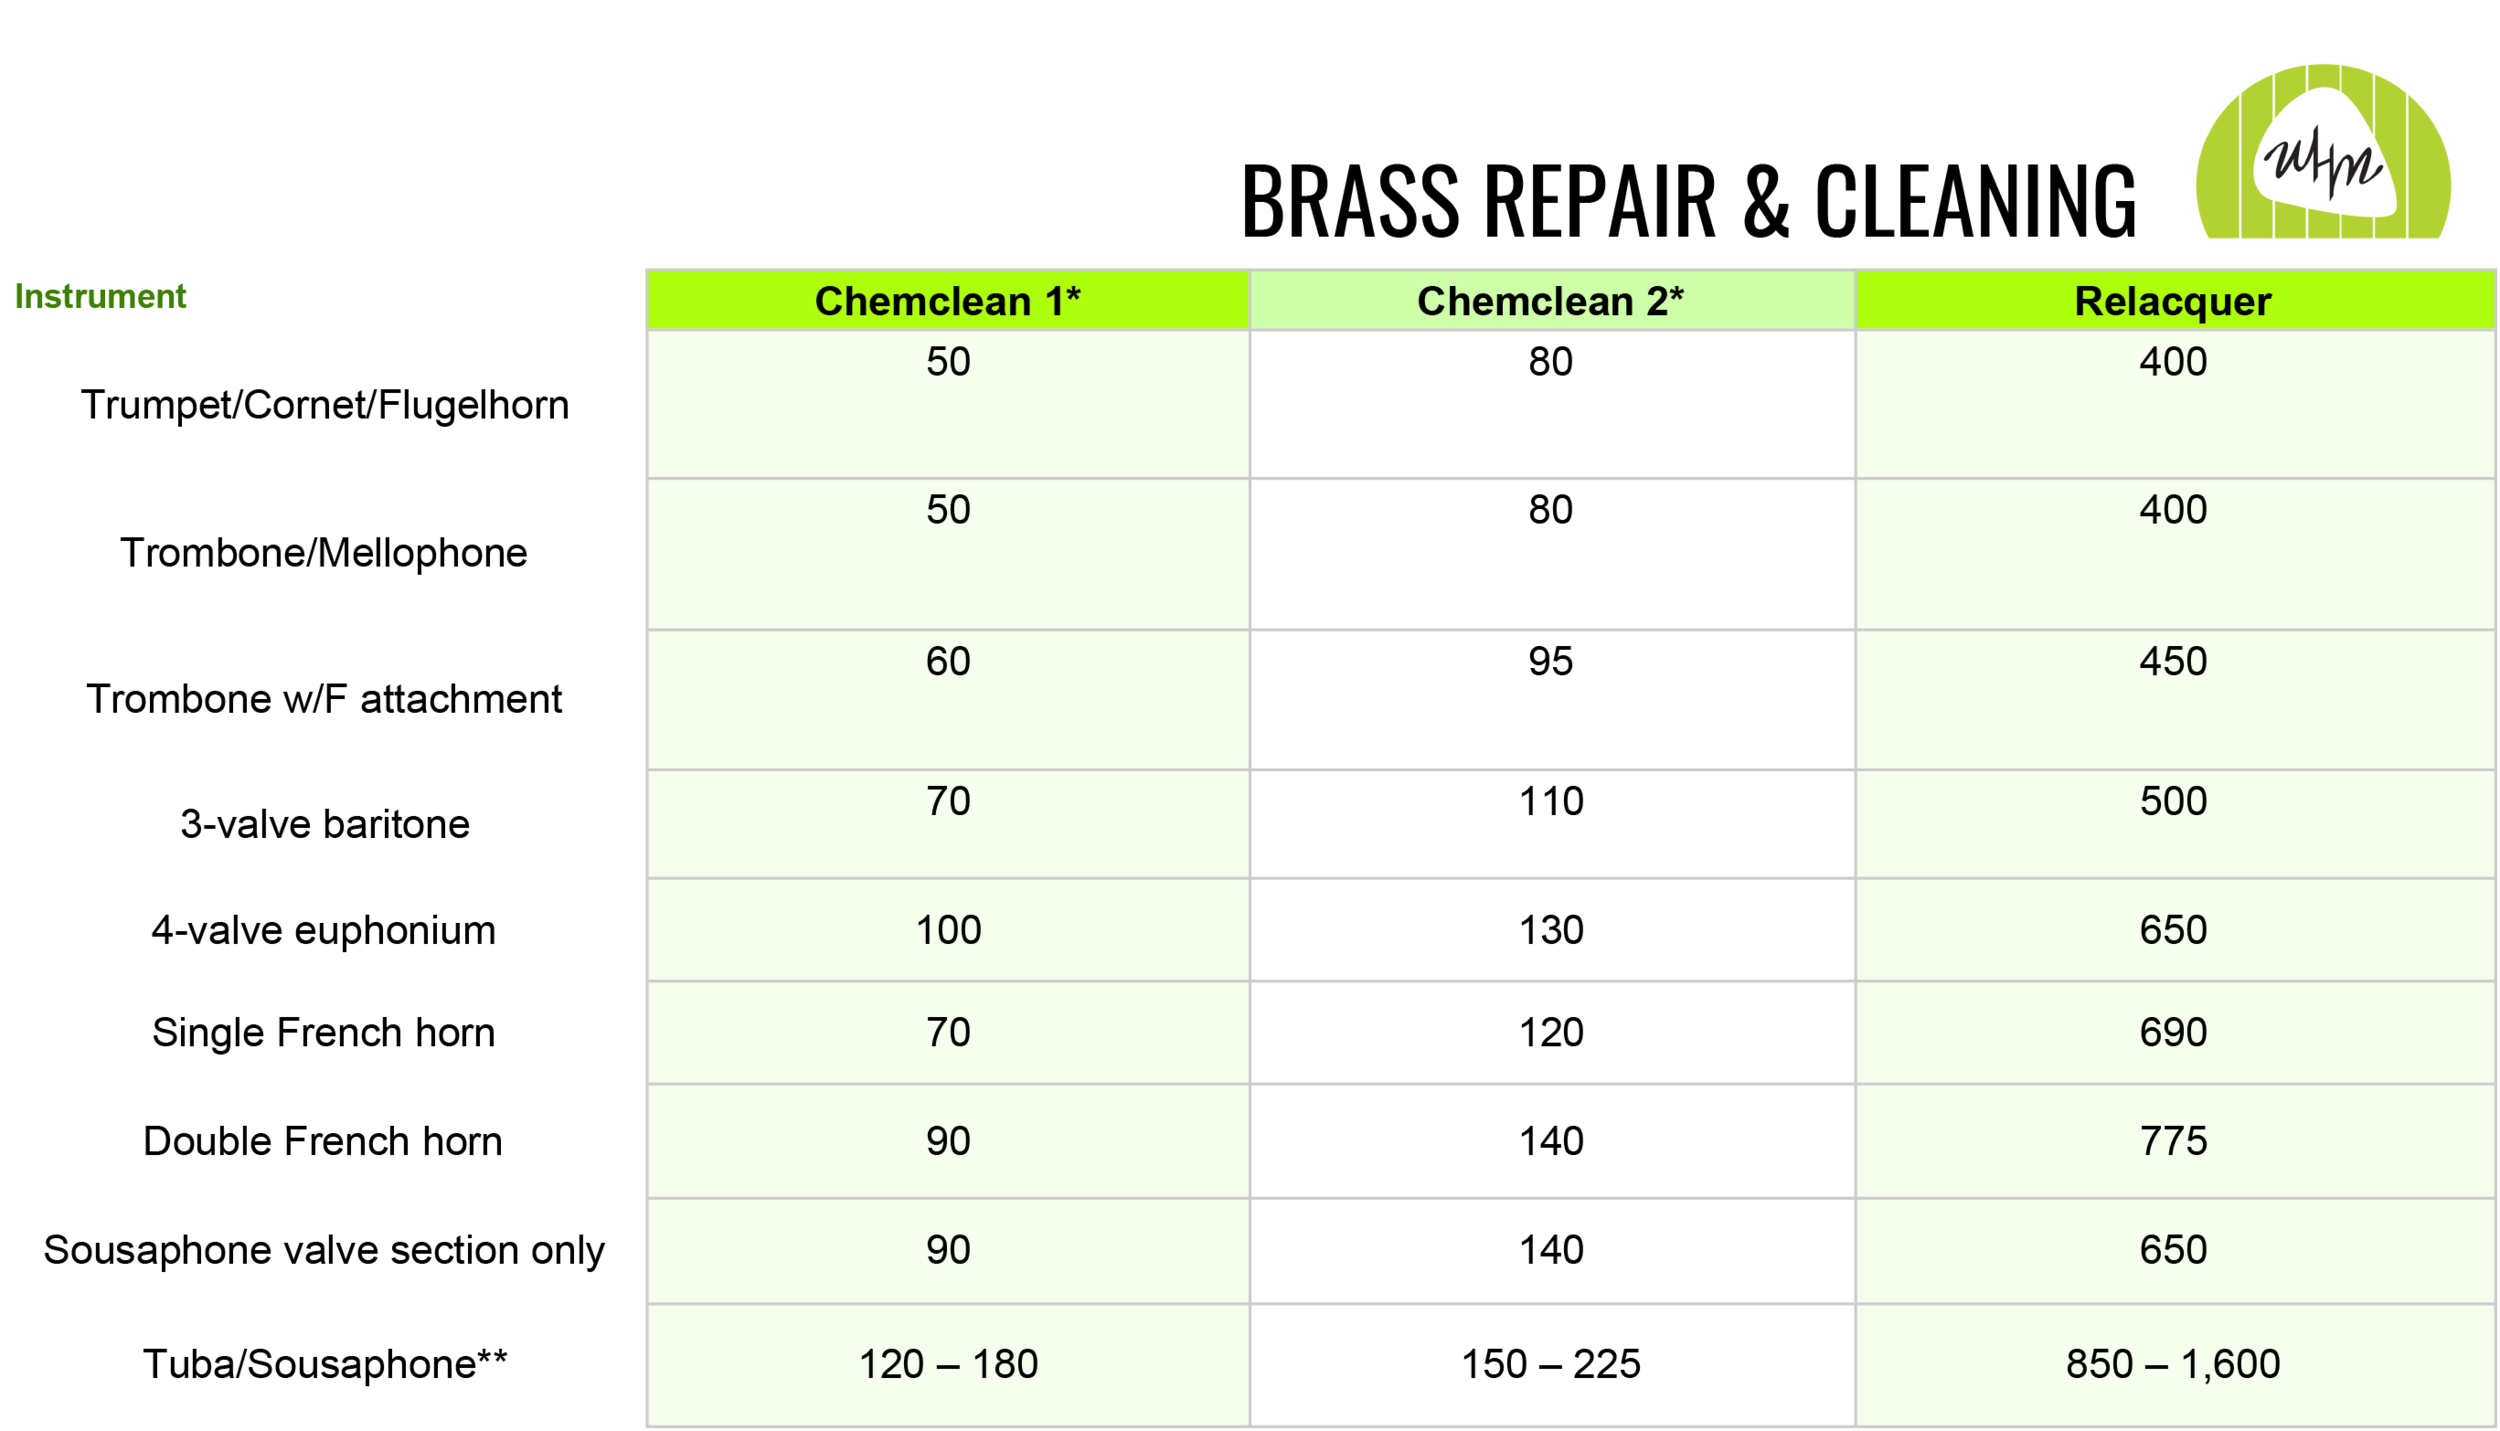 Brass Repair - Sheet1 (2).png